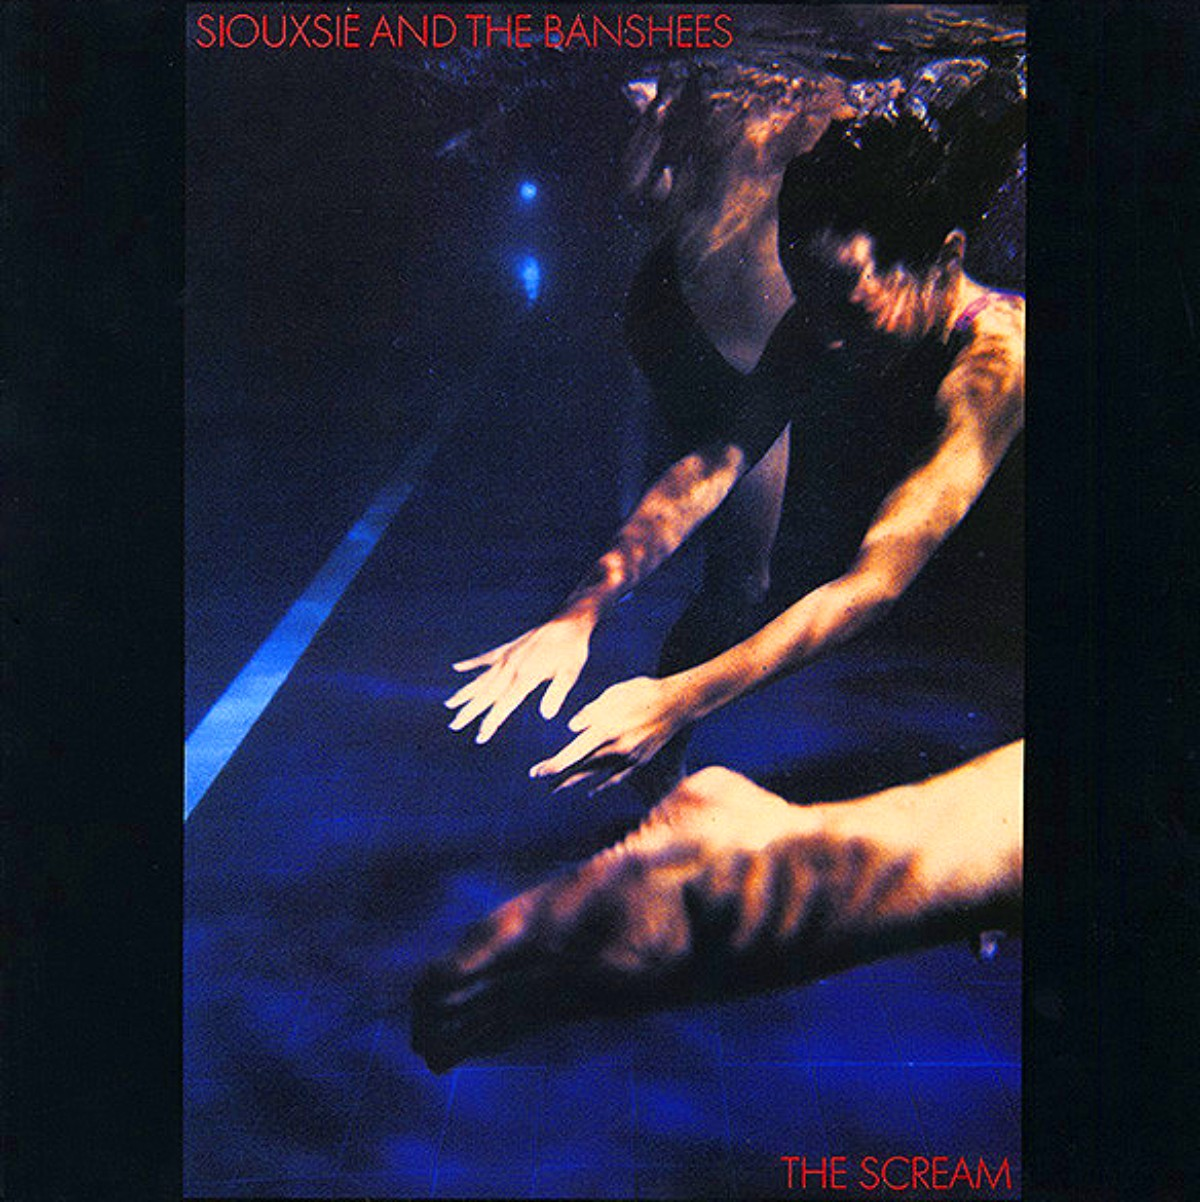 Siouxsie And The Banshees, альбом «The Scream» (1978)